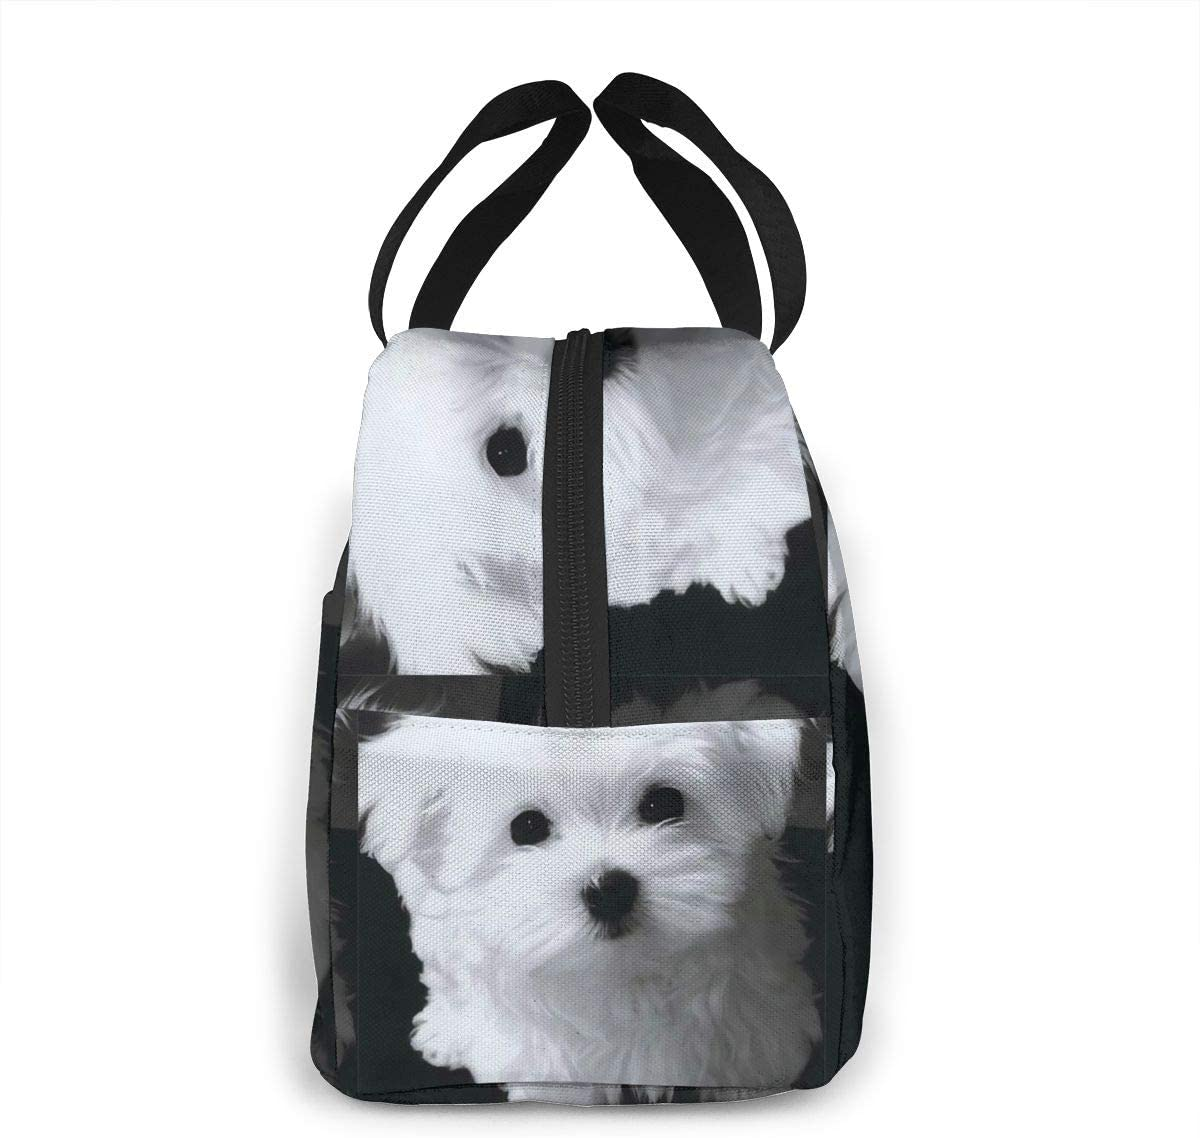 Casual Beach Bag Cute Funny Warm Animal Pet Dog Painting Durable Water Resistant Classic Tolietry Travel Bag Women High School Bag Colleges Bags Light Sports Bag